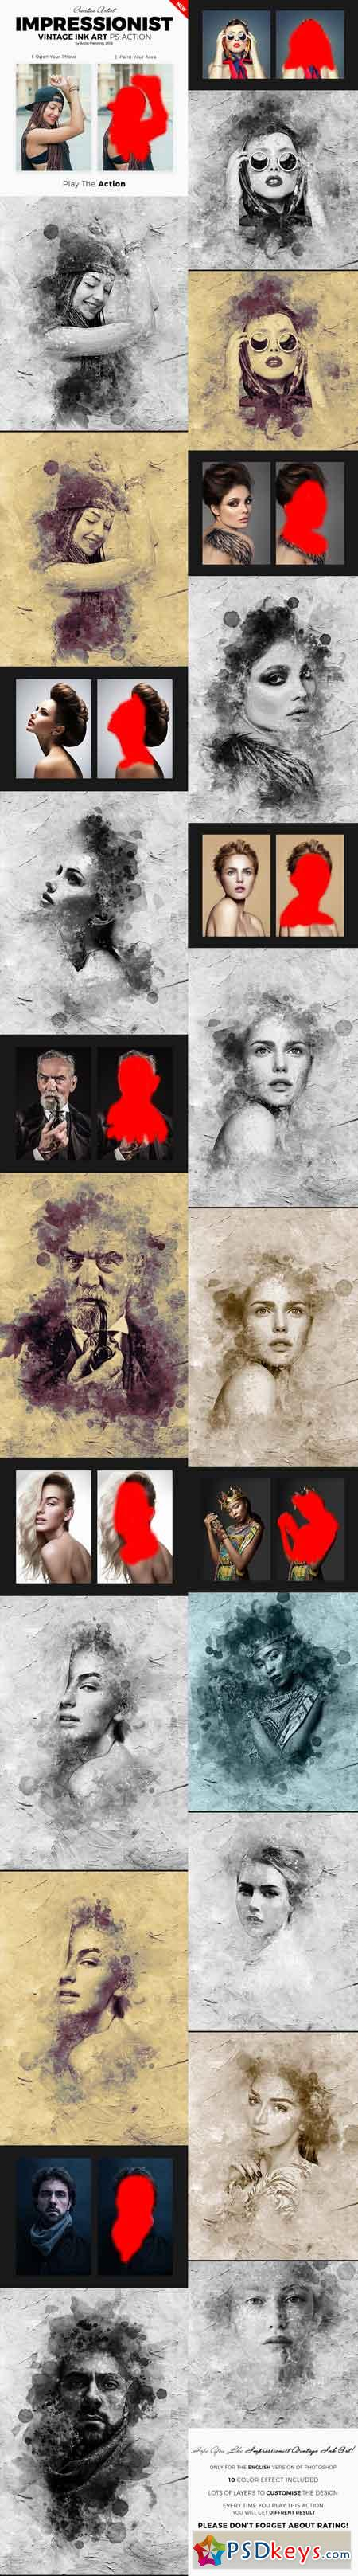 Impressionist Vintage Ink Art Photoshop Action 21359978